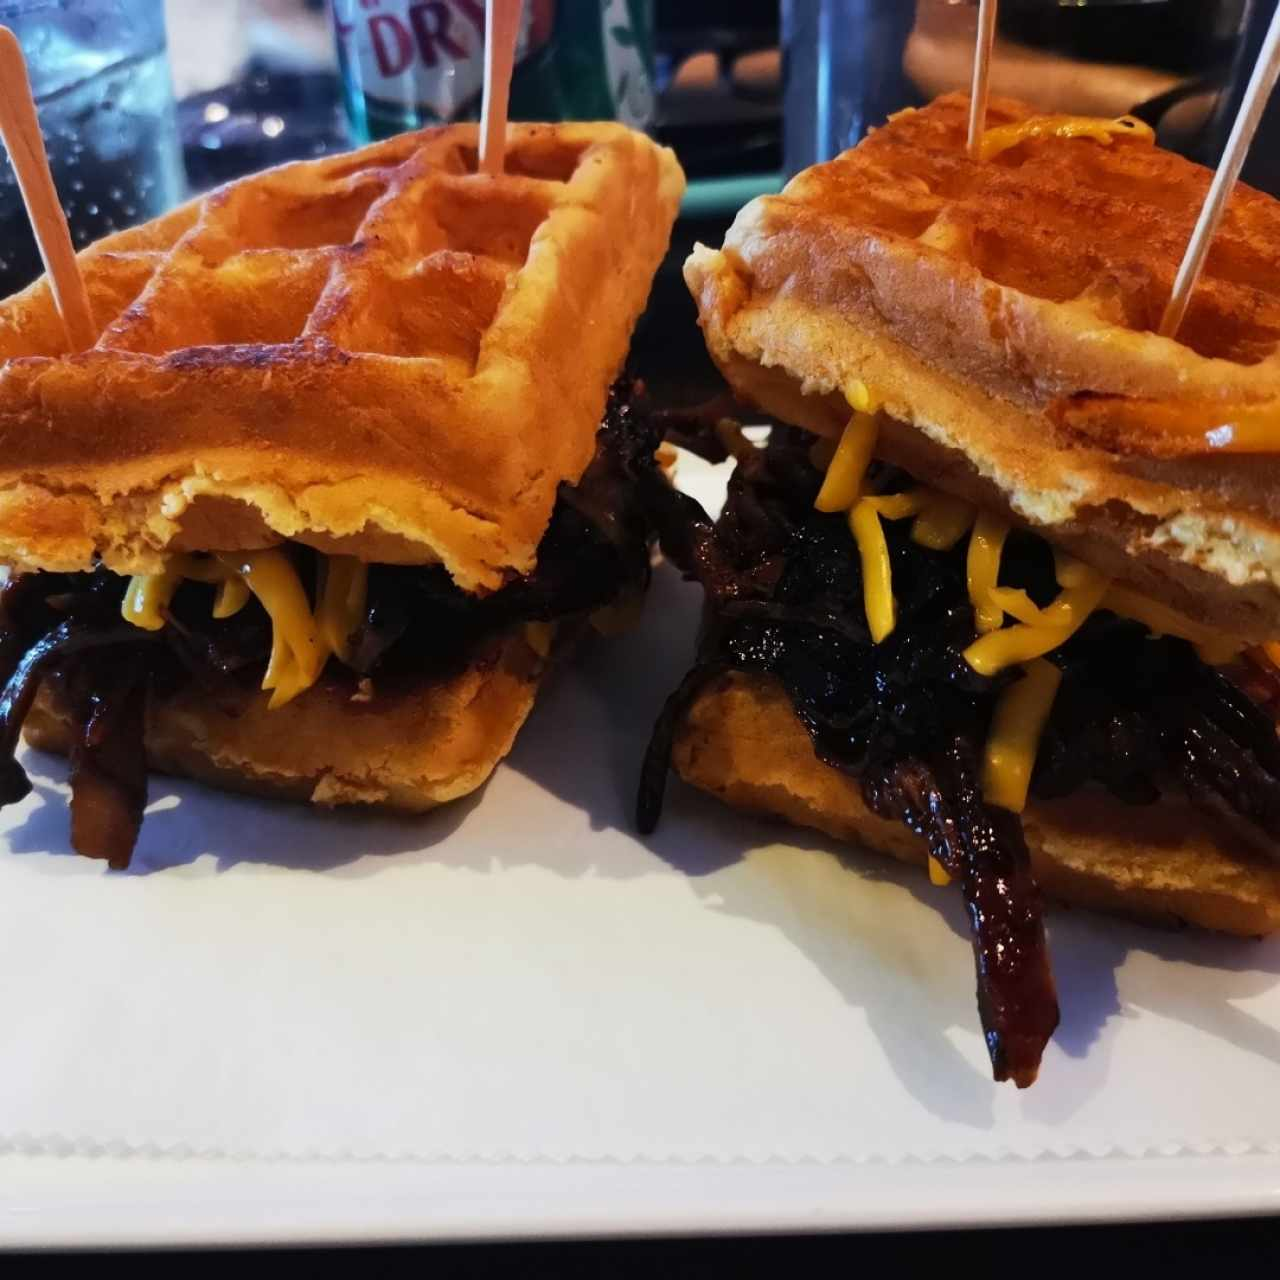 Pulled pork barbecue waffle